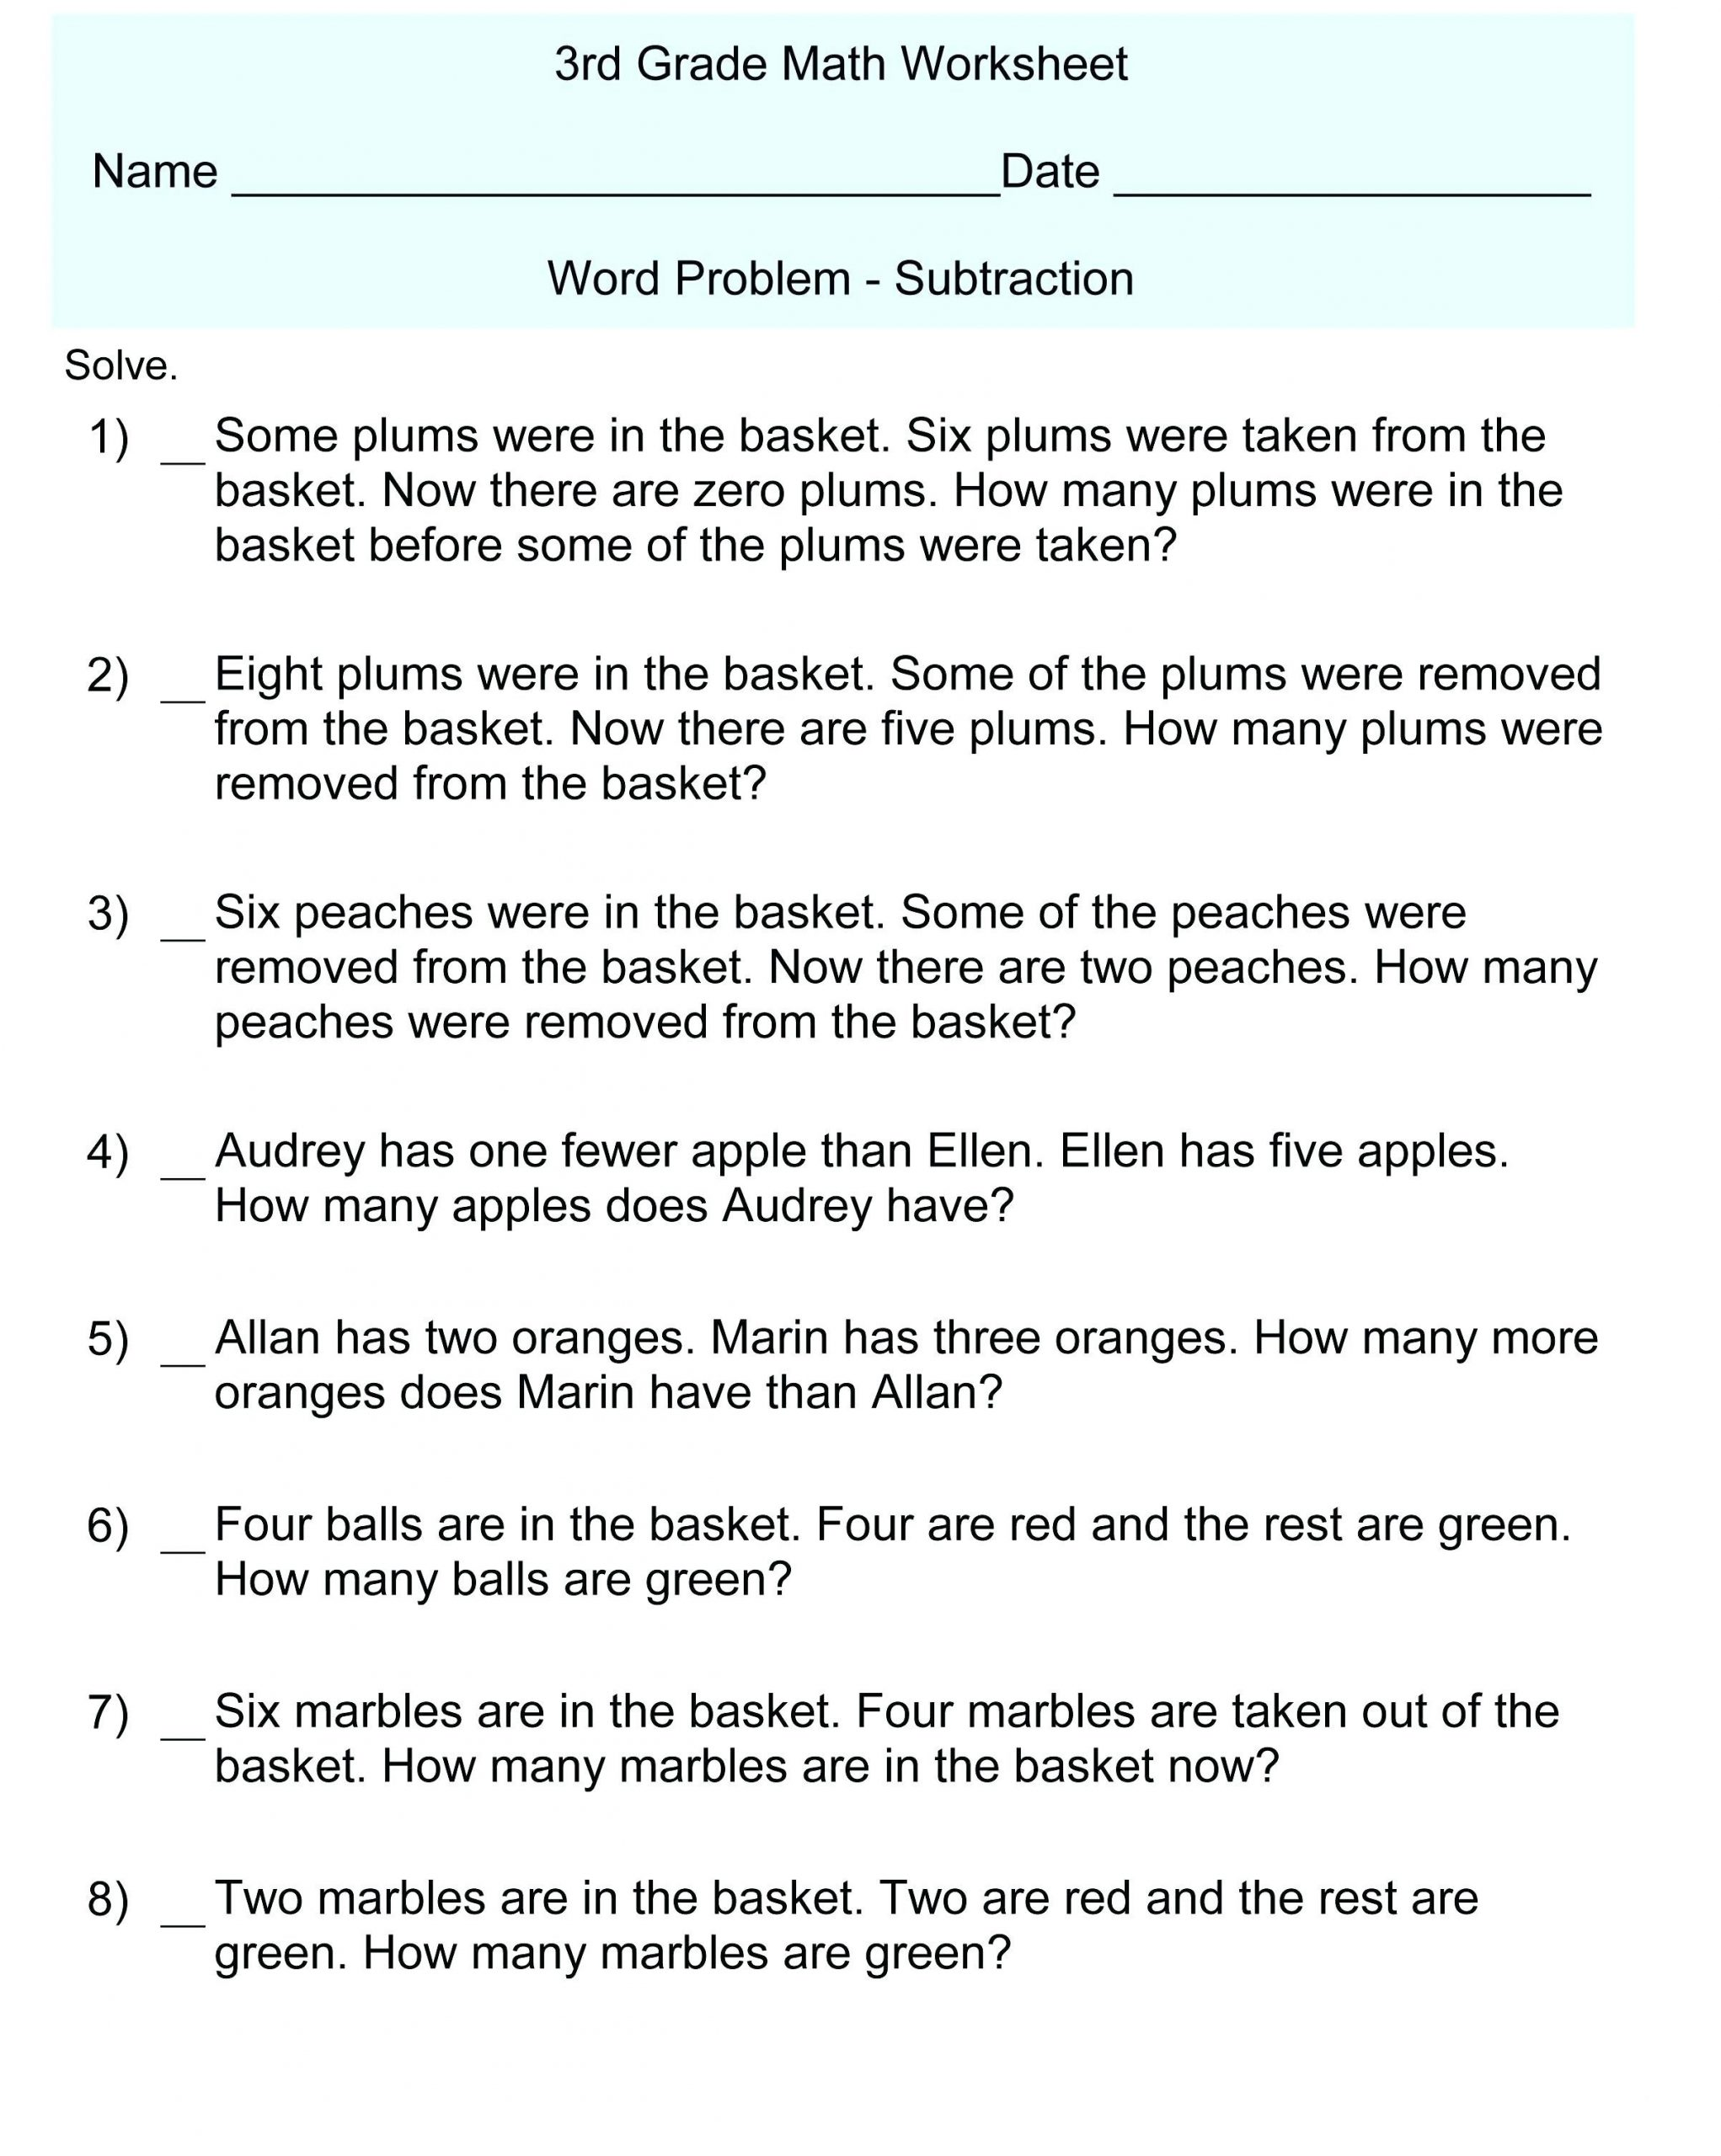 Real World Math Problems Worksheets 3rd Grade Math Word Problems Best Coloring Pages for Kids